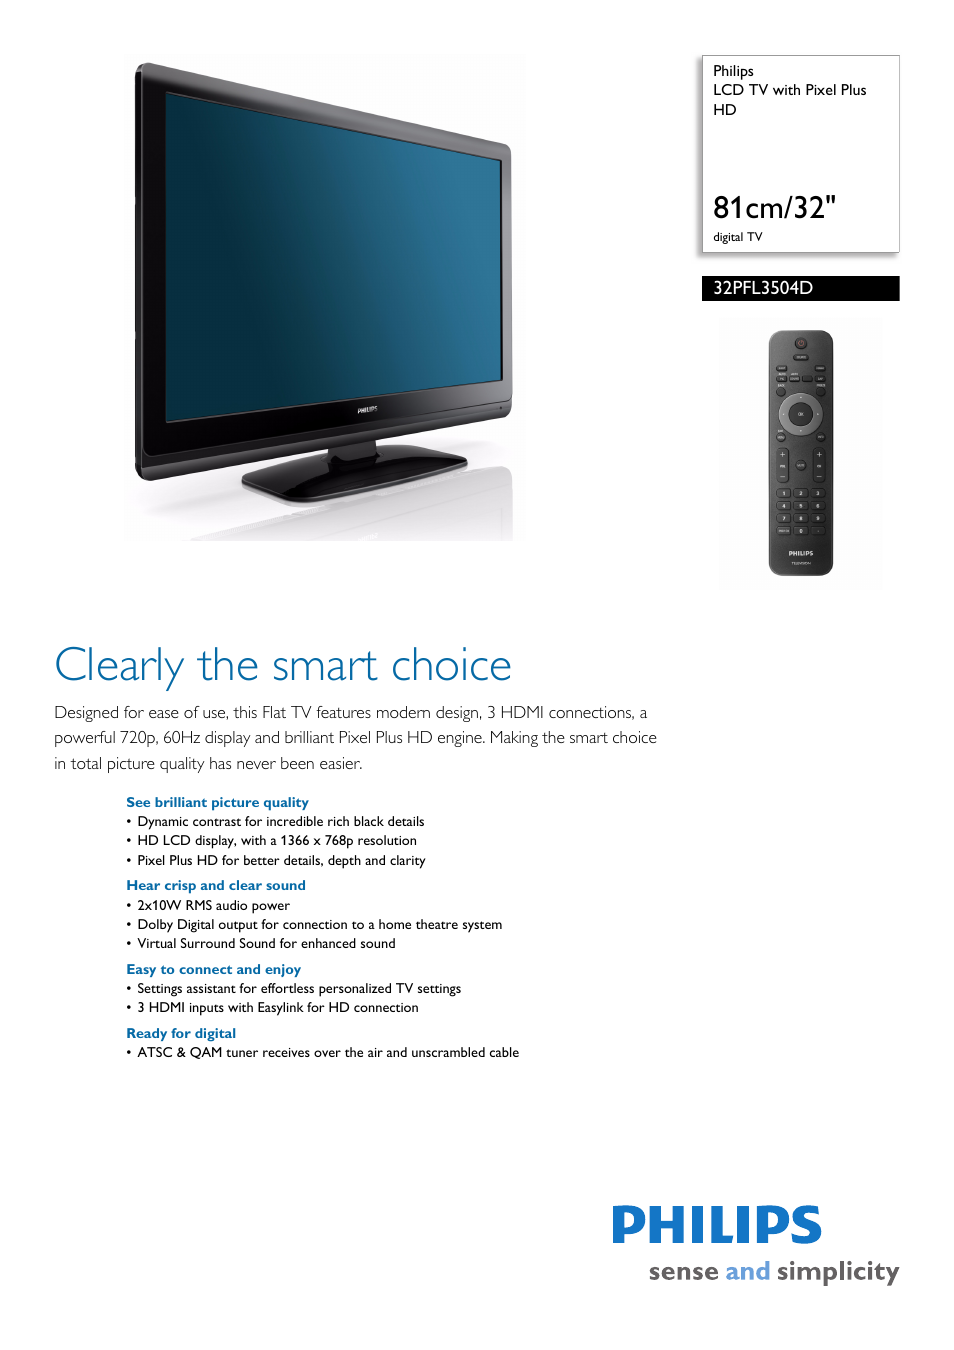 philips 32pfl3504d f7 user manual 3 pages rh manualsdir com Philips TV User Manual Asus User Manual